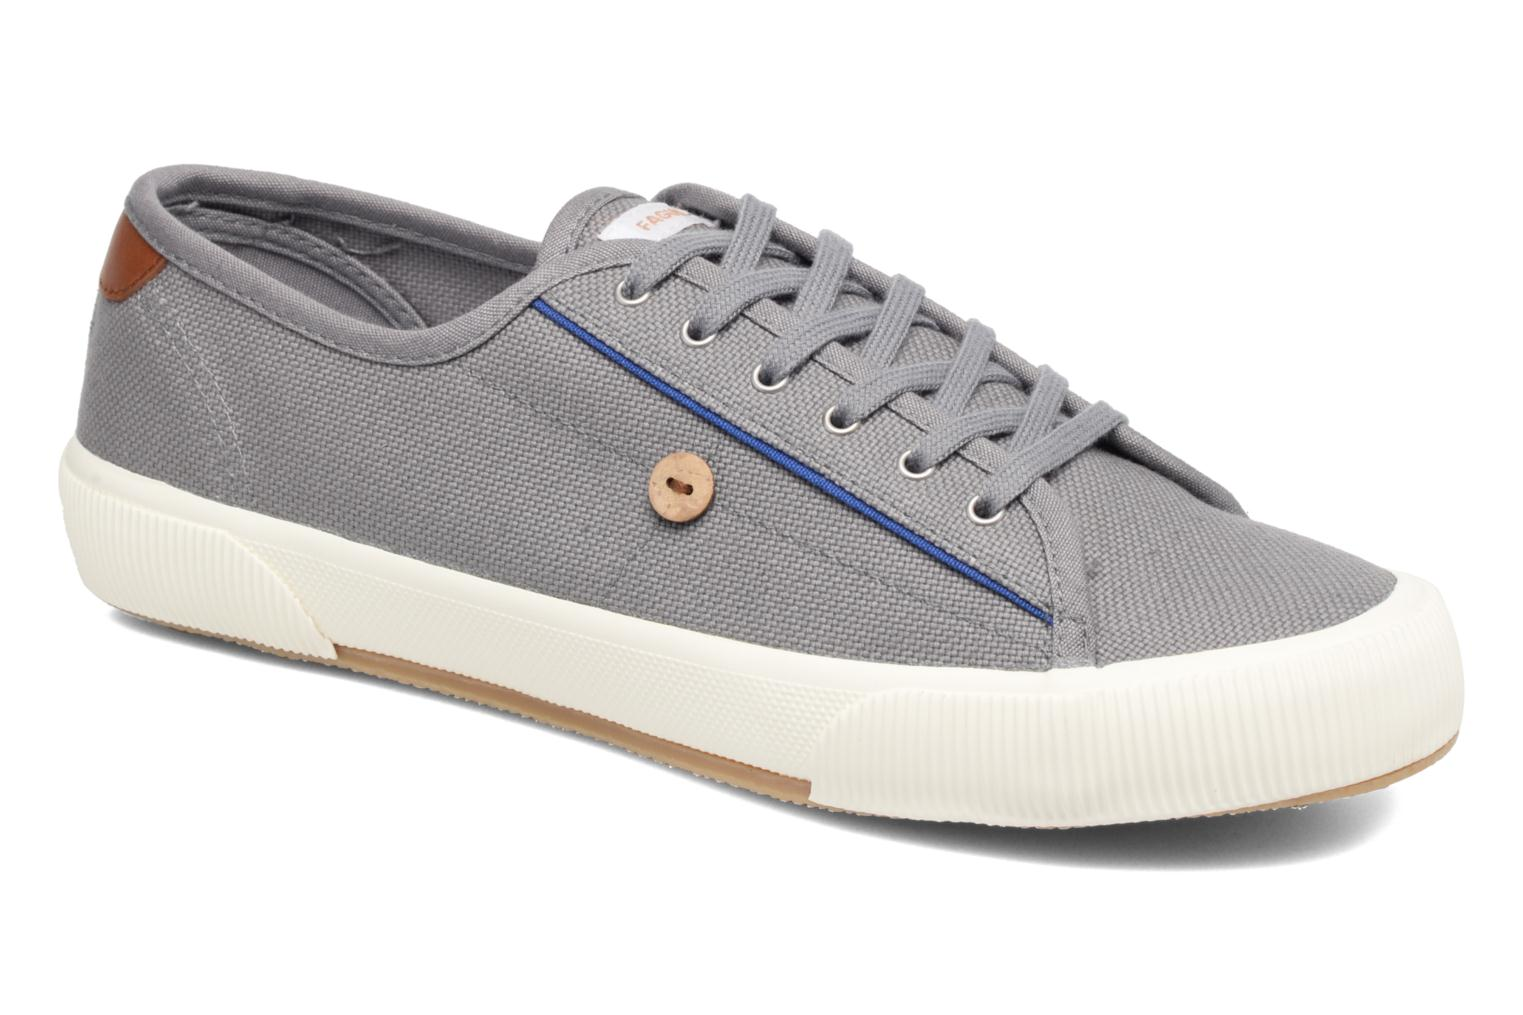 Marques Chaussure homme Faguo homme Birch01 Grey